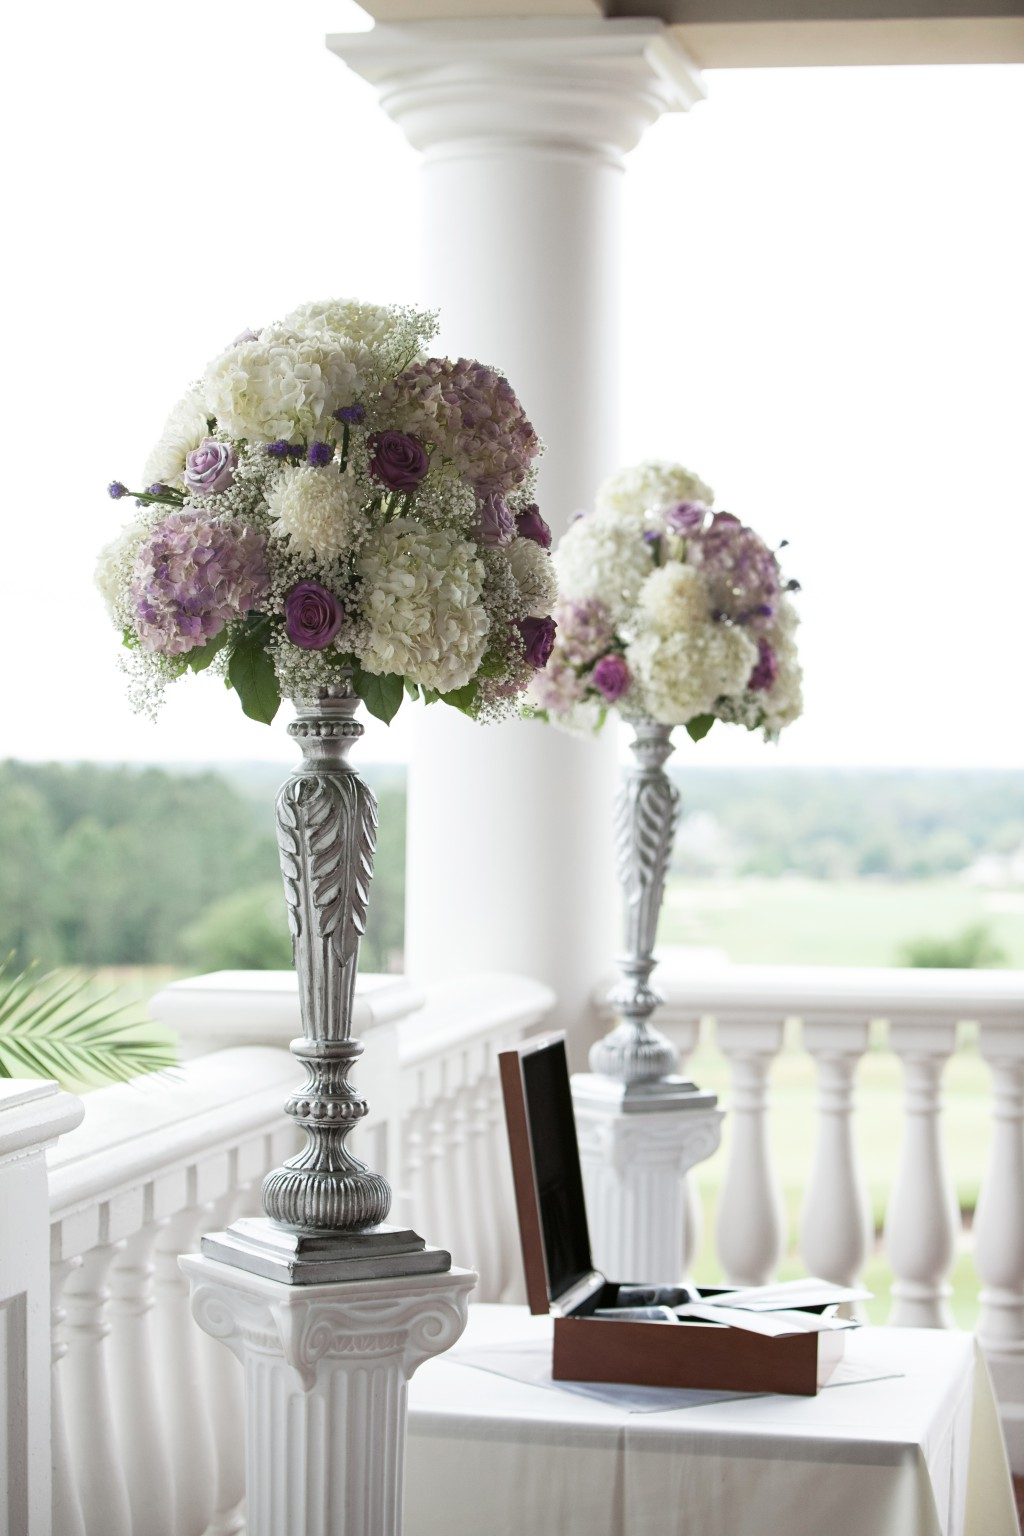 best tampa wedding florist northside florist tall purple wedding ceremony flowers